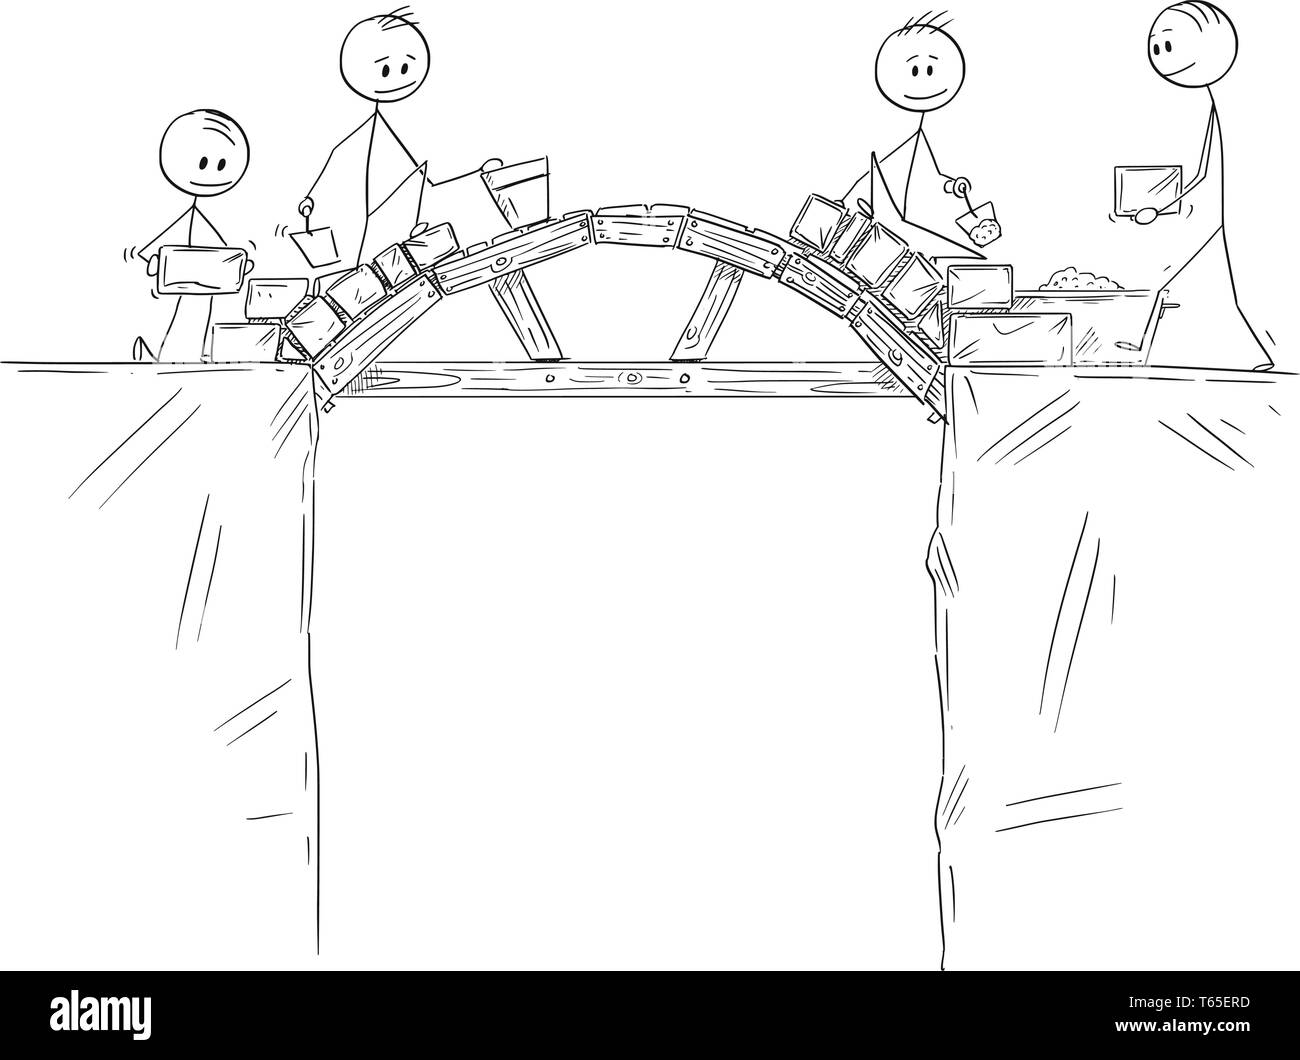 Cartoon stick figure drawing conceptual illustration of group of builders or workers or businessmen working and building a bridge over the chasm or precipice. Concept of teamwork and problem solution. - Stock Vector